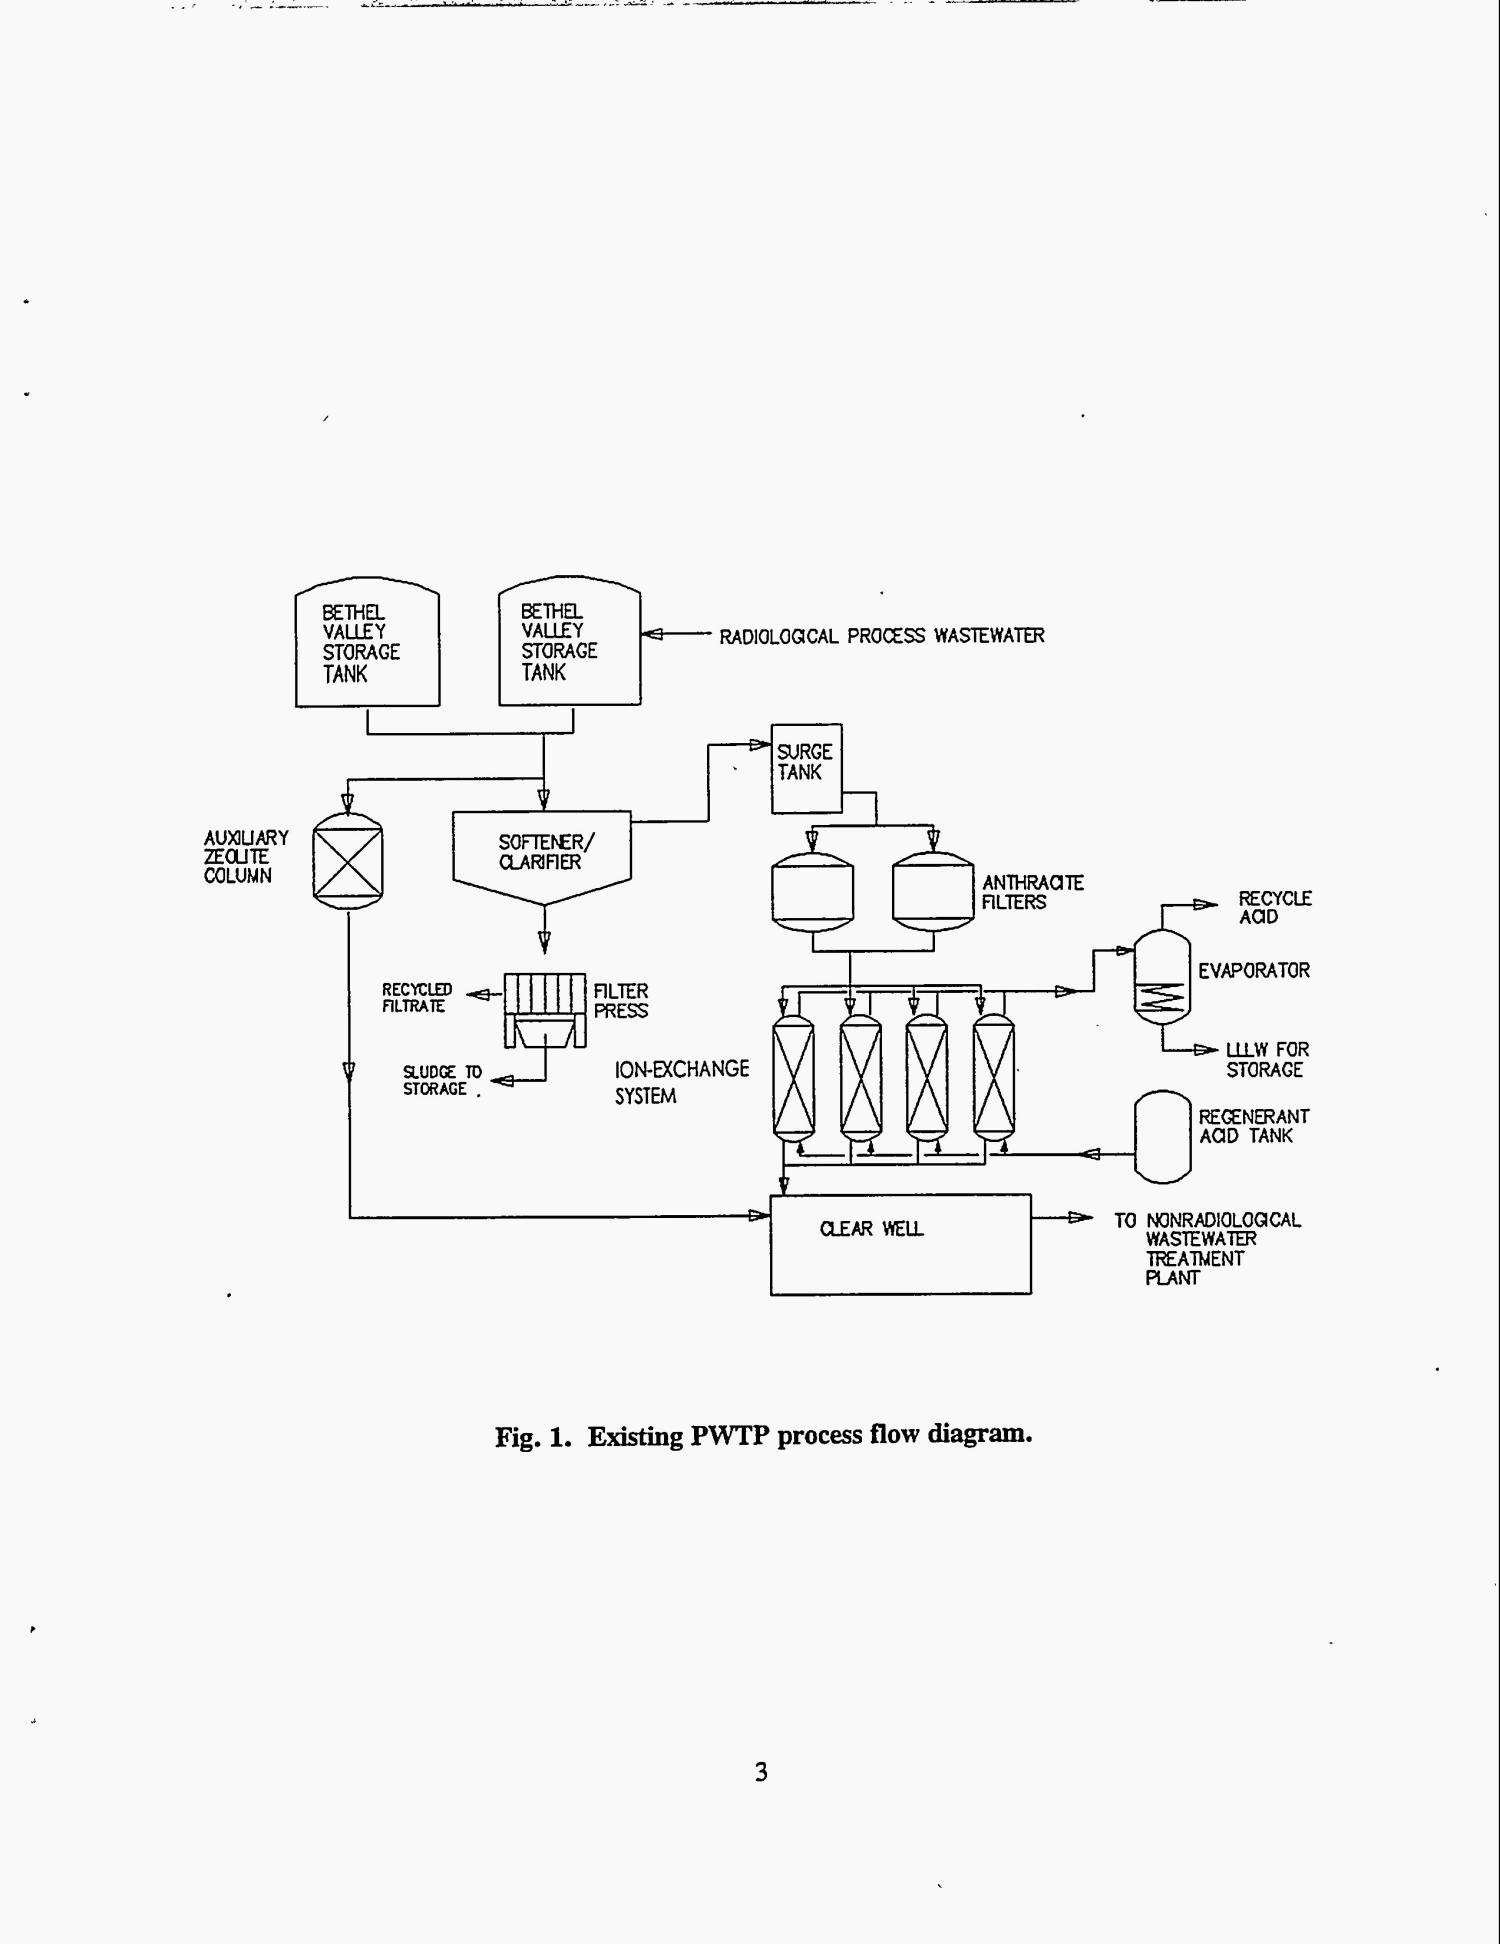 Evaluation Of Operating Characteristics For A Chabazite Zeolite Process Flow Diagram System Treatment Wastewater At Oak Ridge National Laboratory Page 12 60